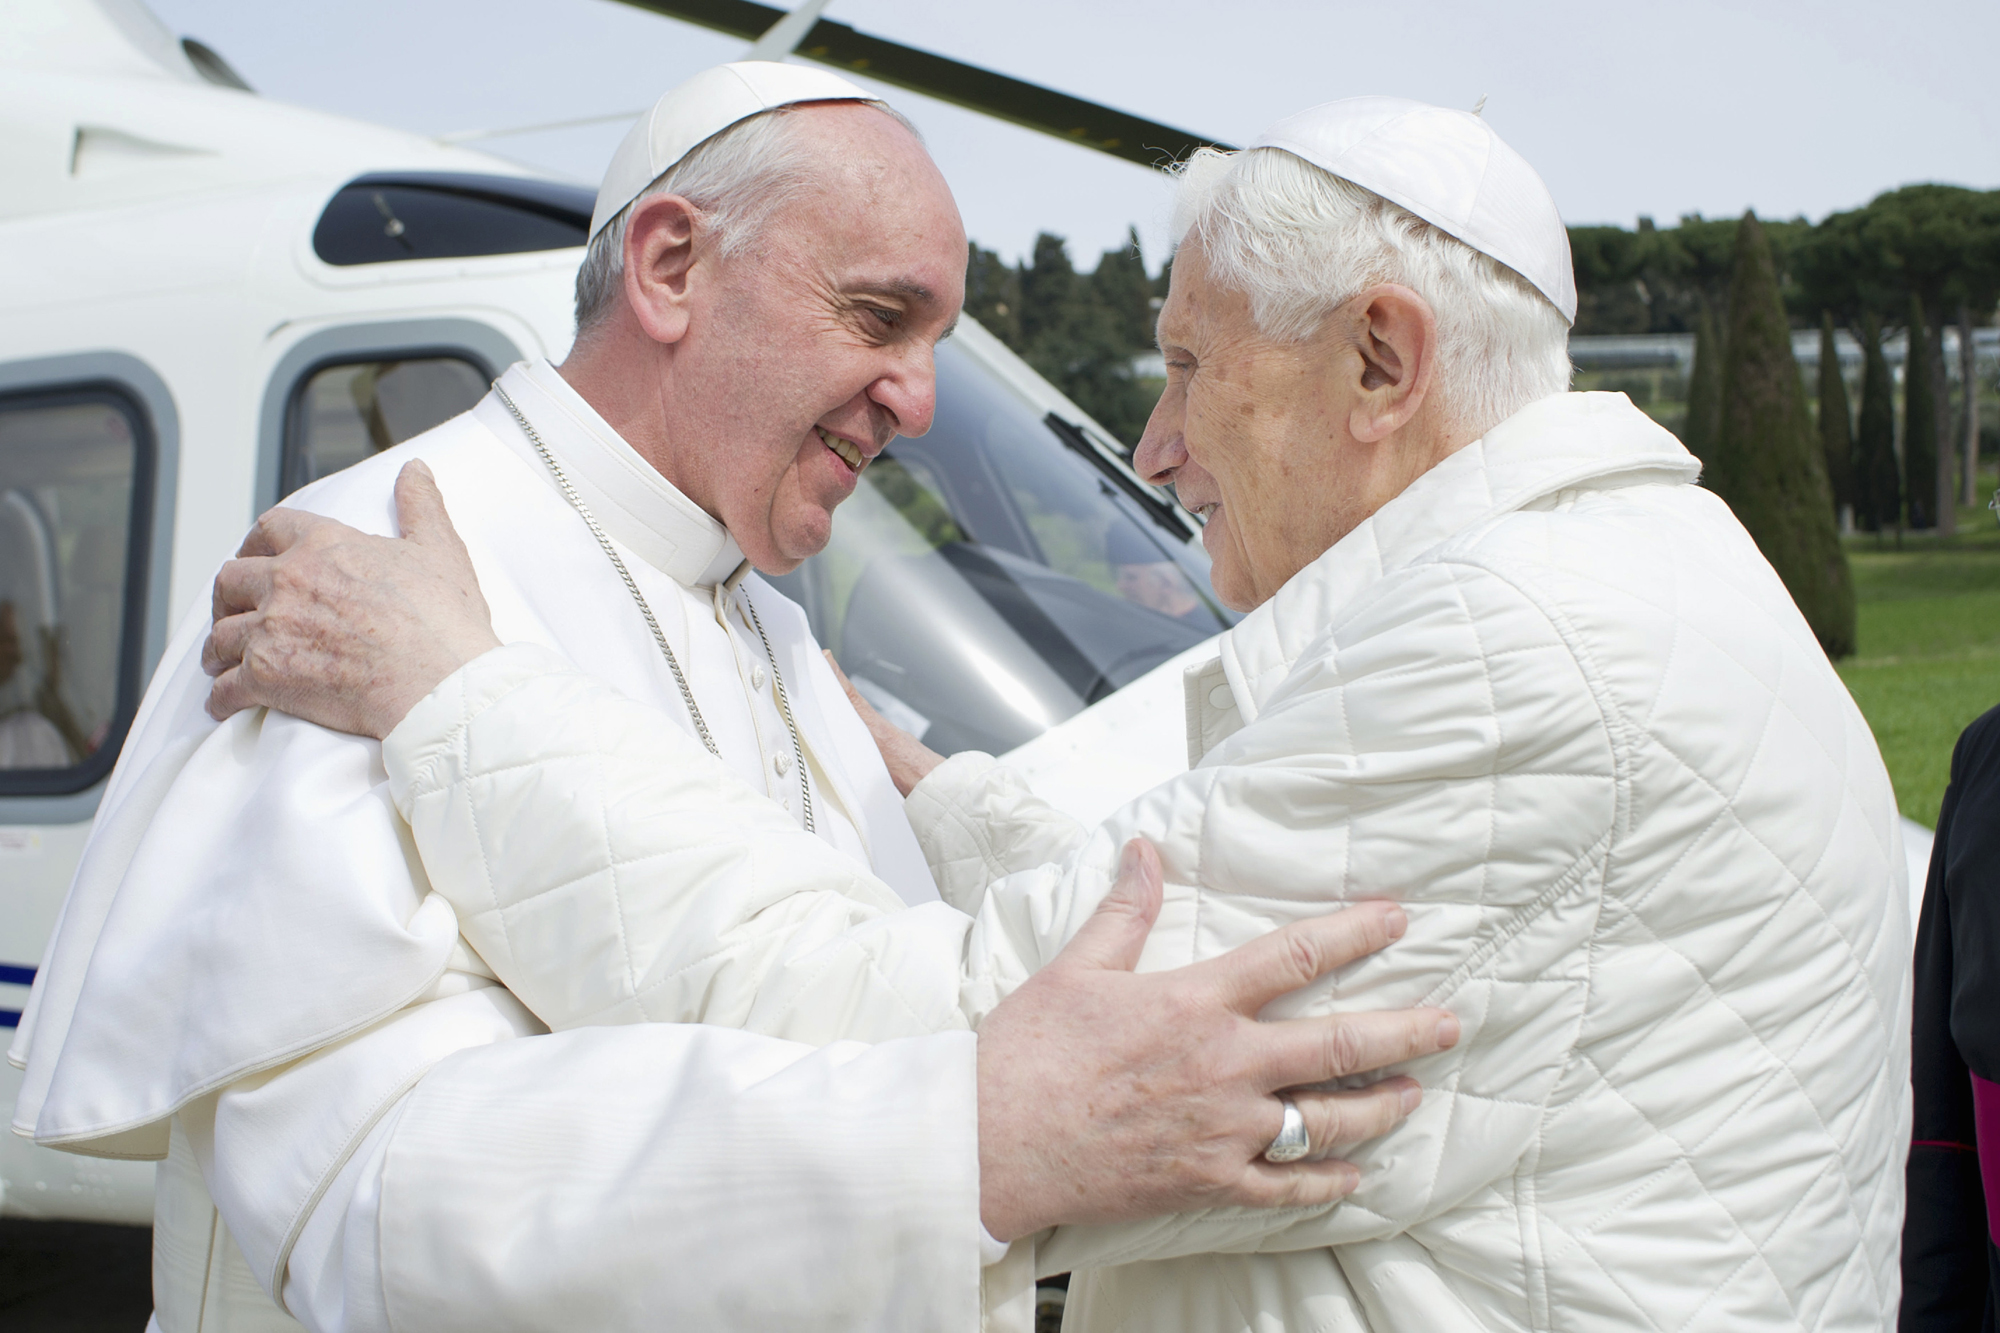 Pope Francis embraces Pope Emeritus Benedict XVI at the Castel Gandolfo summer residence in 2013.